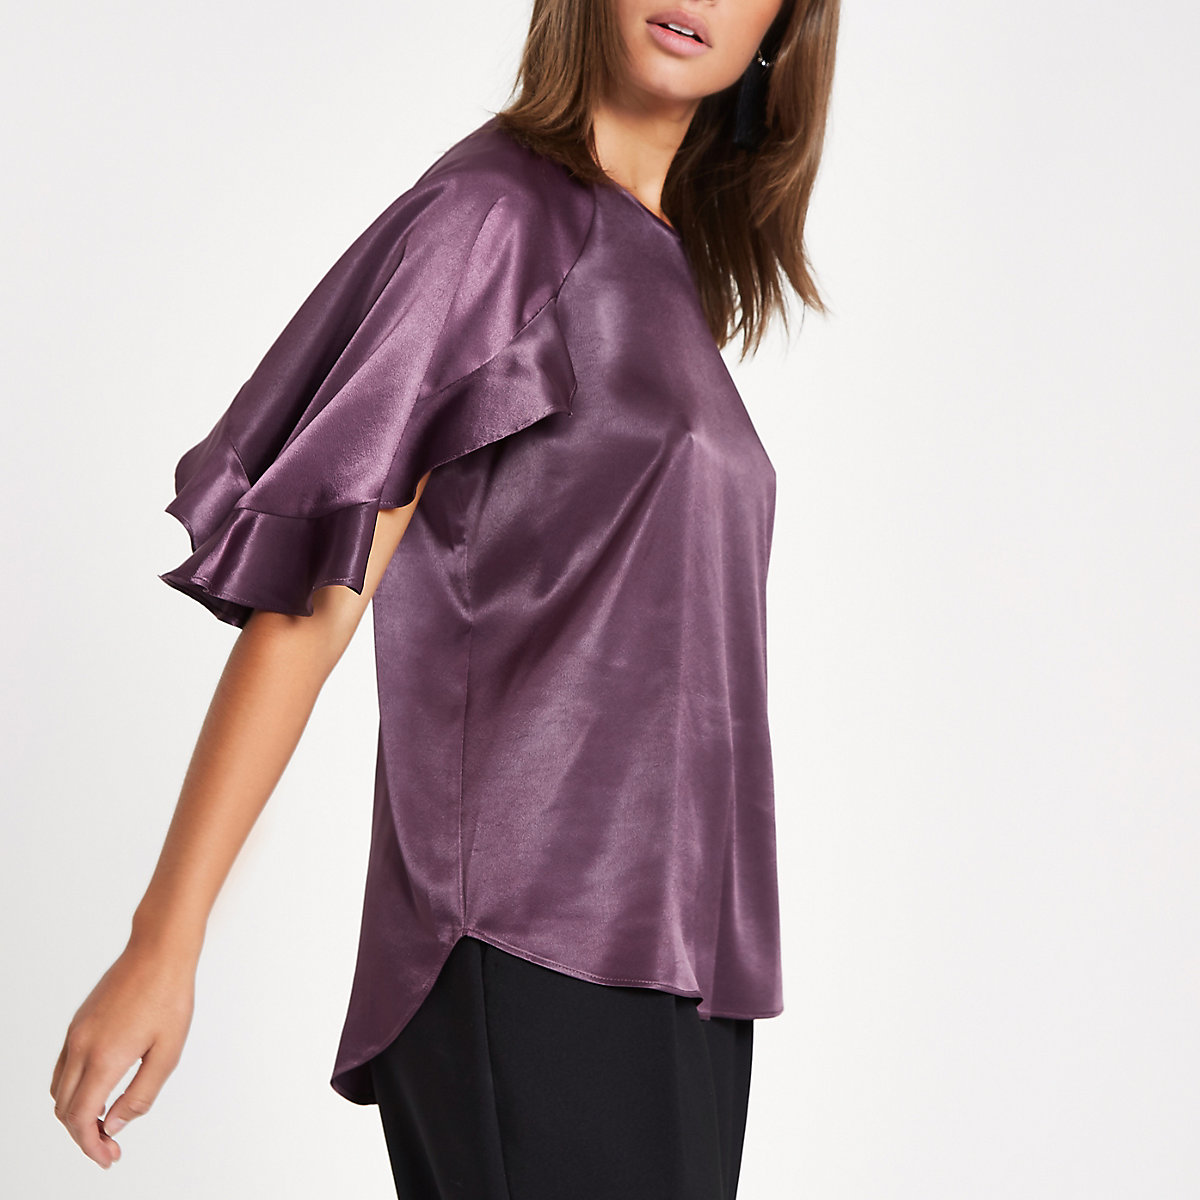 Purple chiffon frill sleeve top